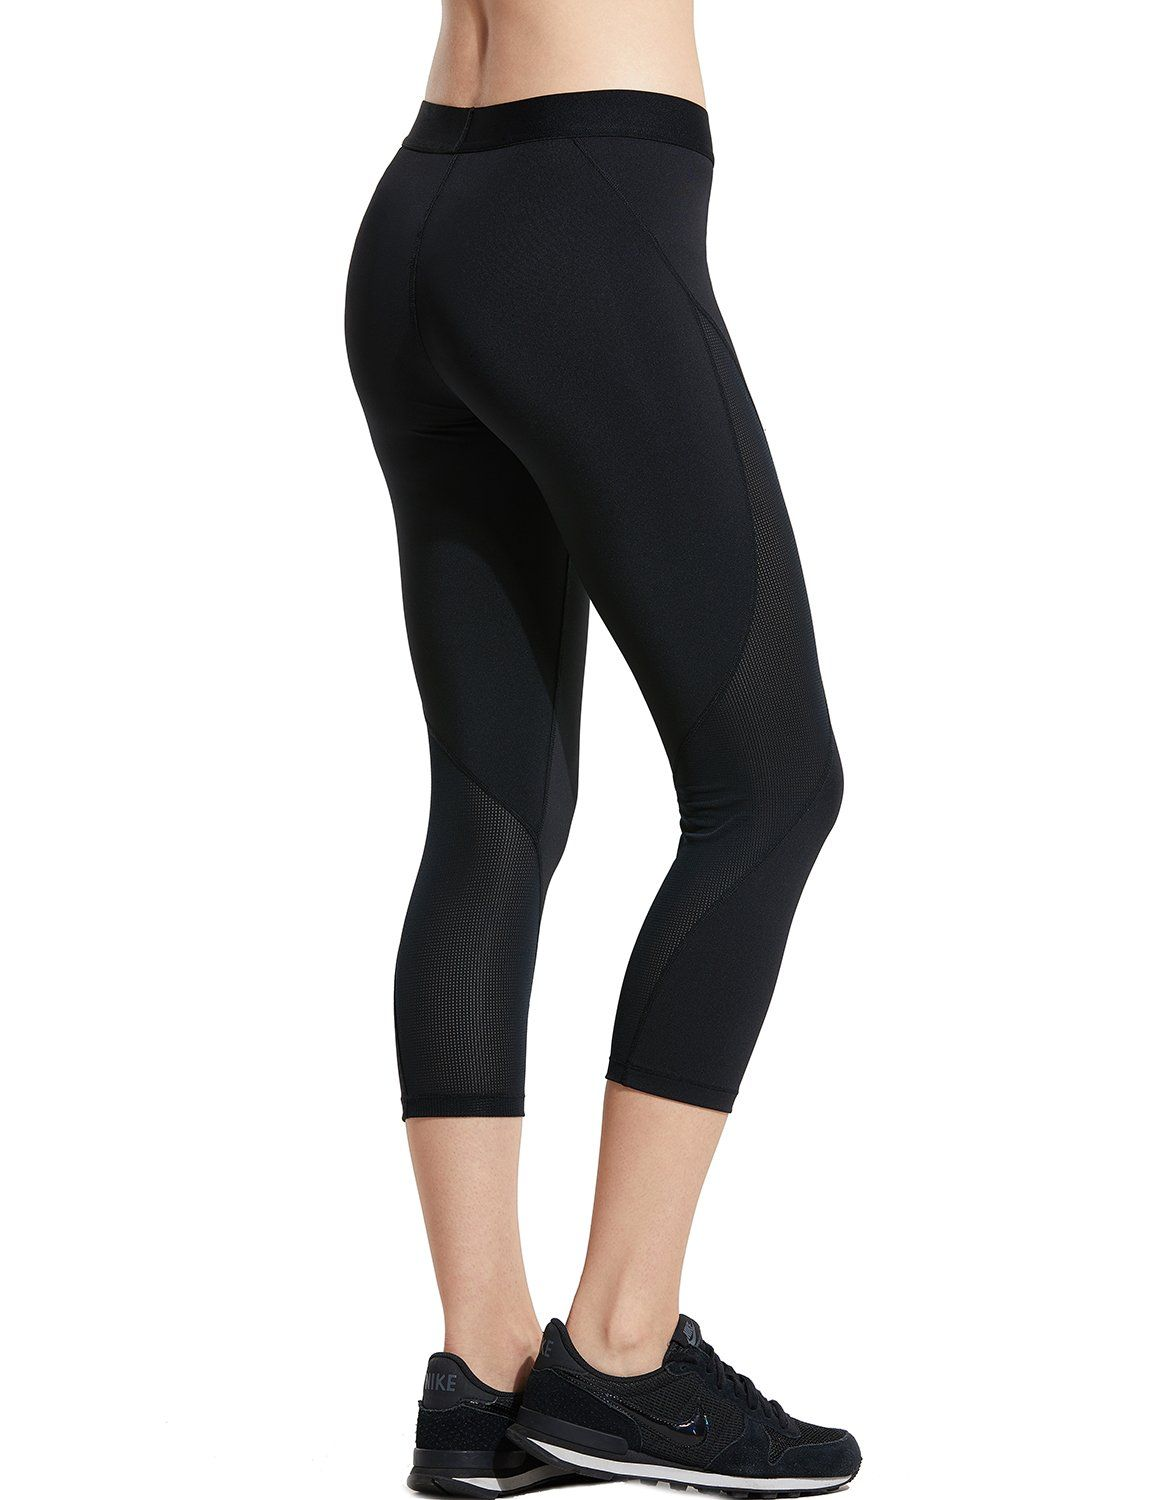 85f2e3708ac61 SYROKAN Womens Slimming Mesh Training Capri Leggings Sports Cropped Tights  Mesh/Black 21 M8/10 -- Read more at the image link. (This is an affiliate  link)